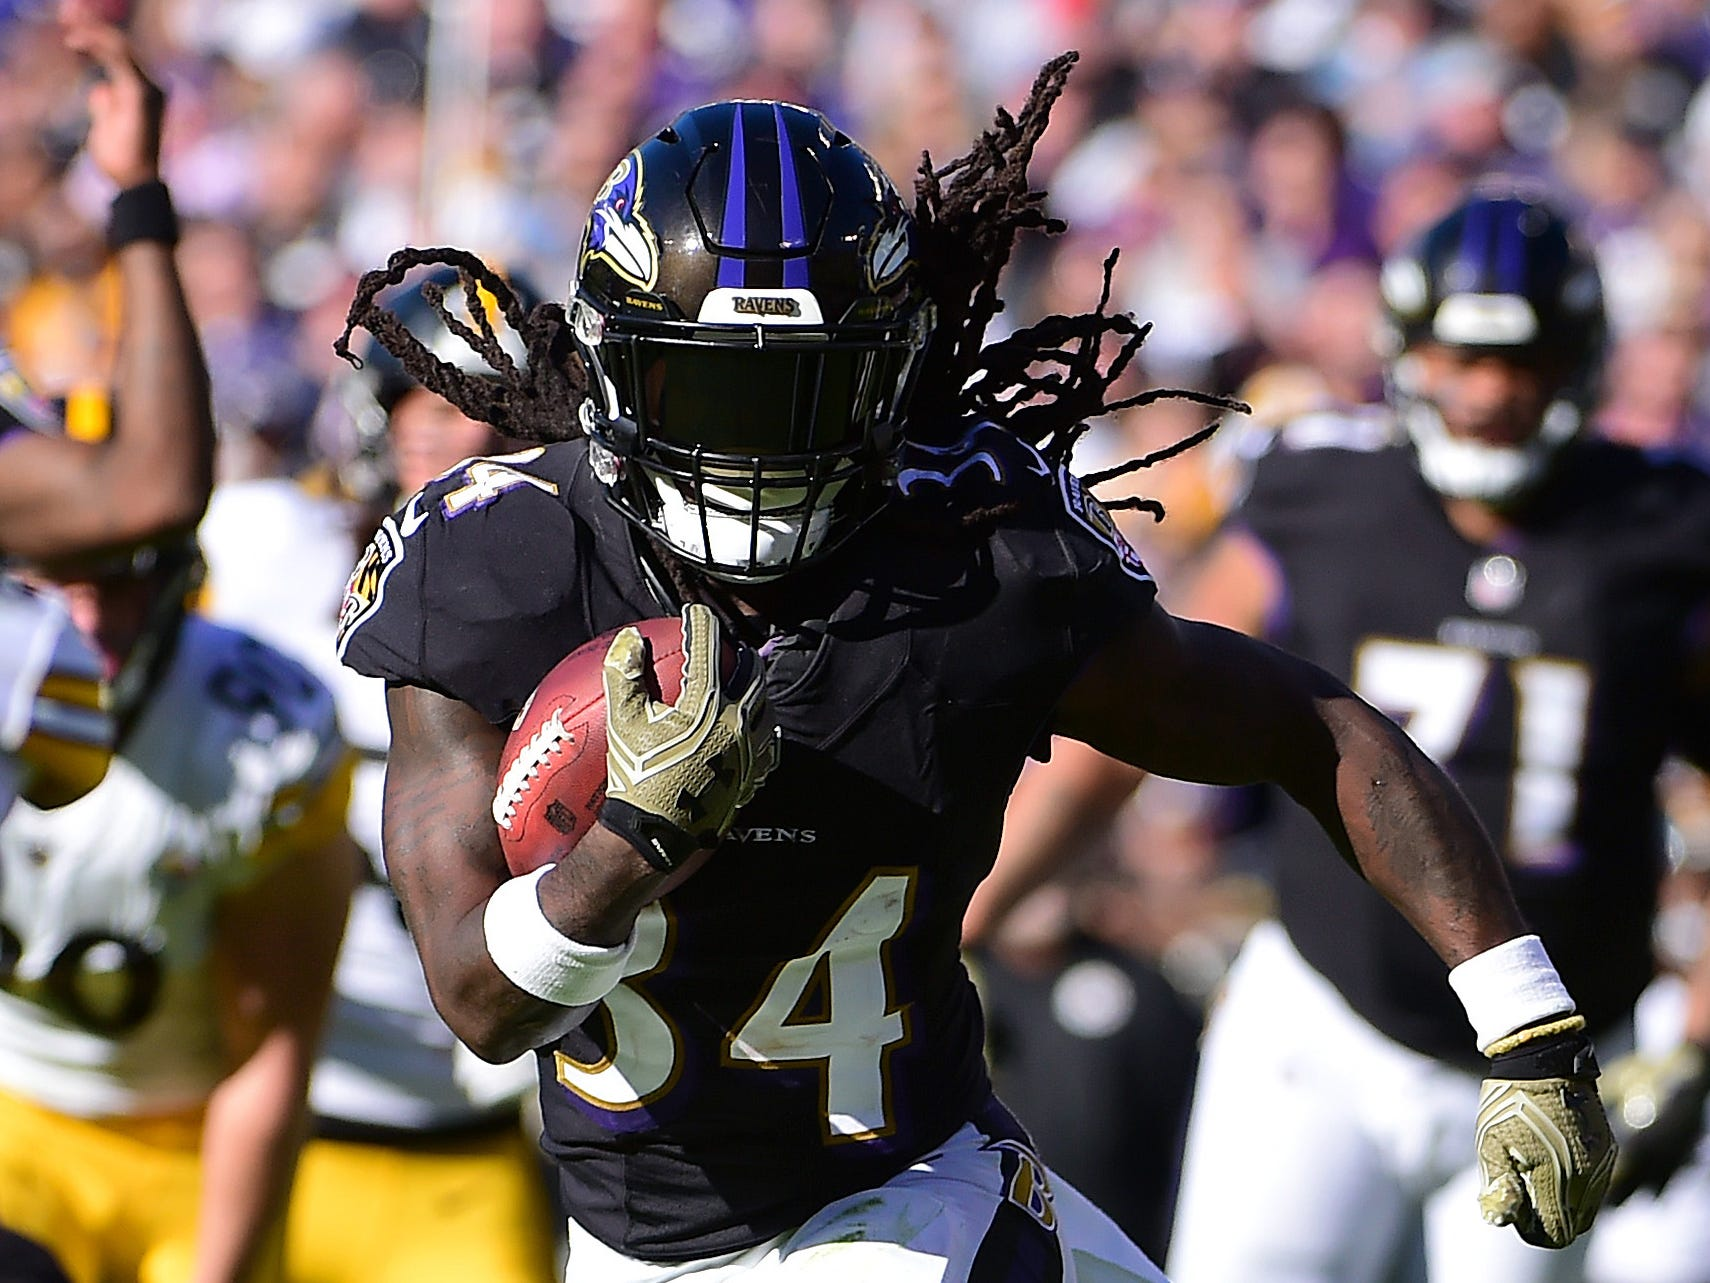 Alex Collins, RB, Baltimore Ravens (foot injury, out for season)